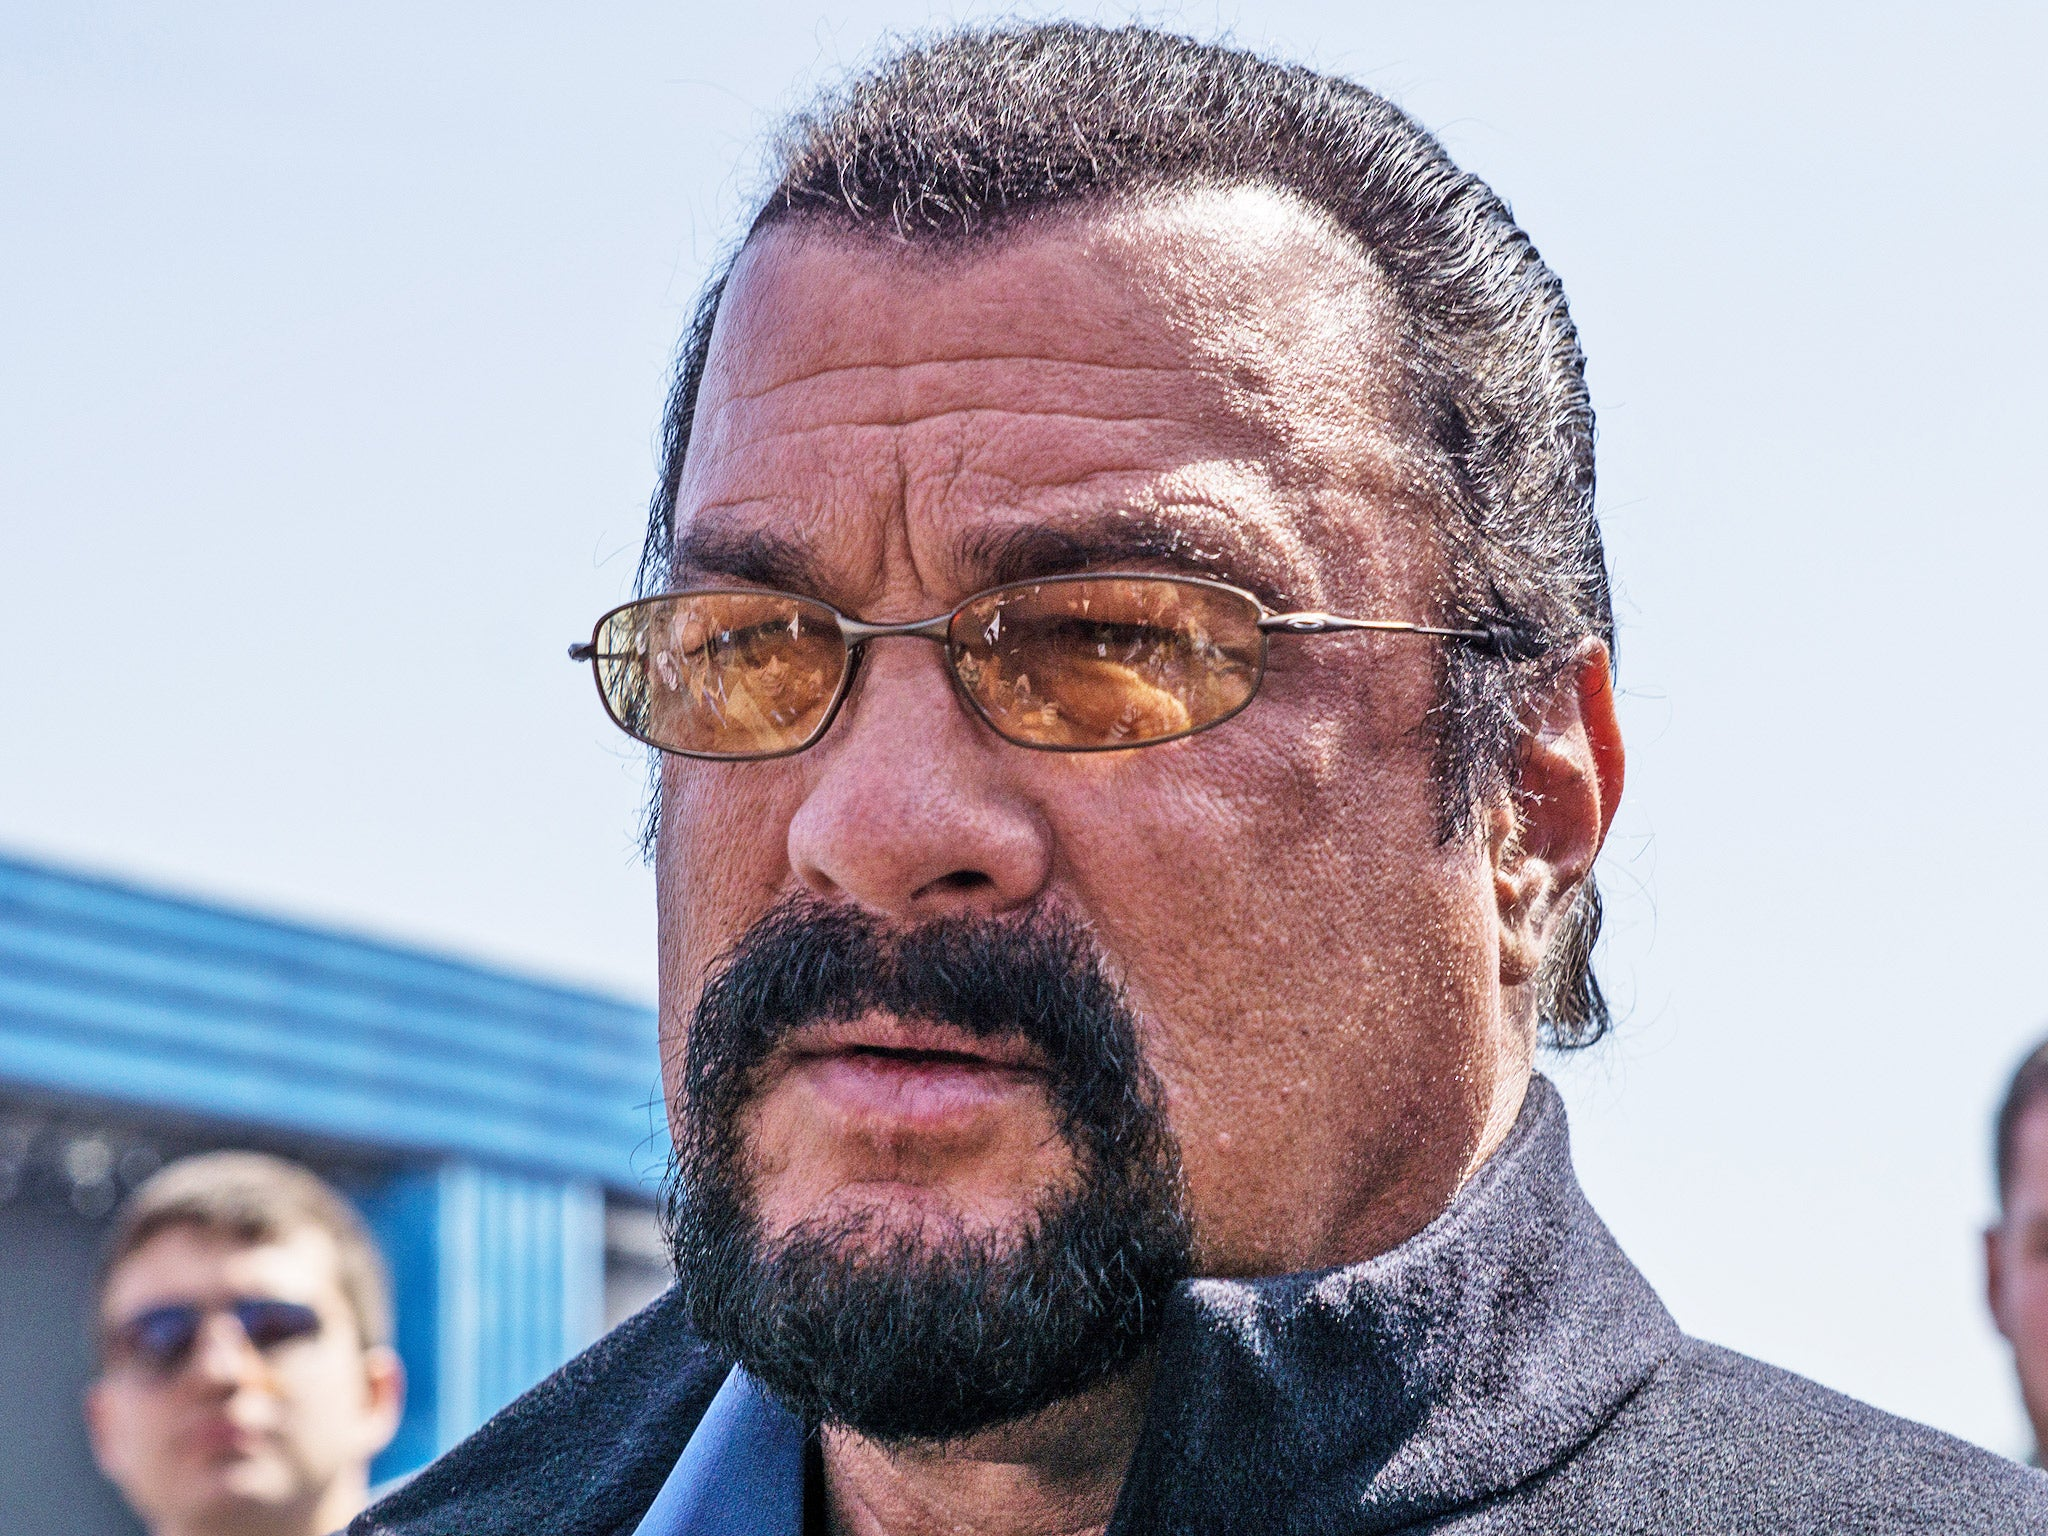 2017 fashion over 50 - Ukraine Blacklists Action Star Steven Seagal Over Russia